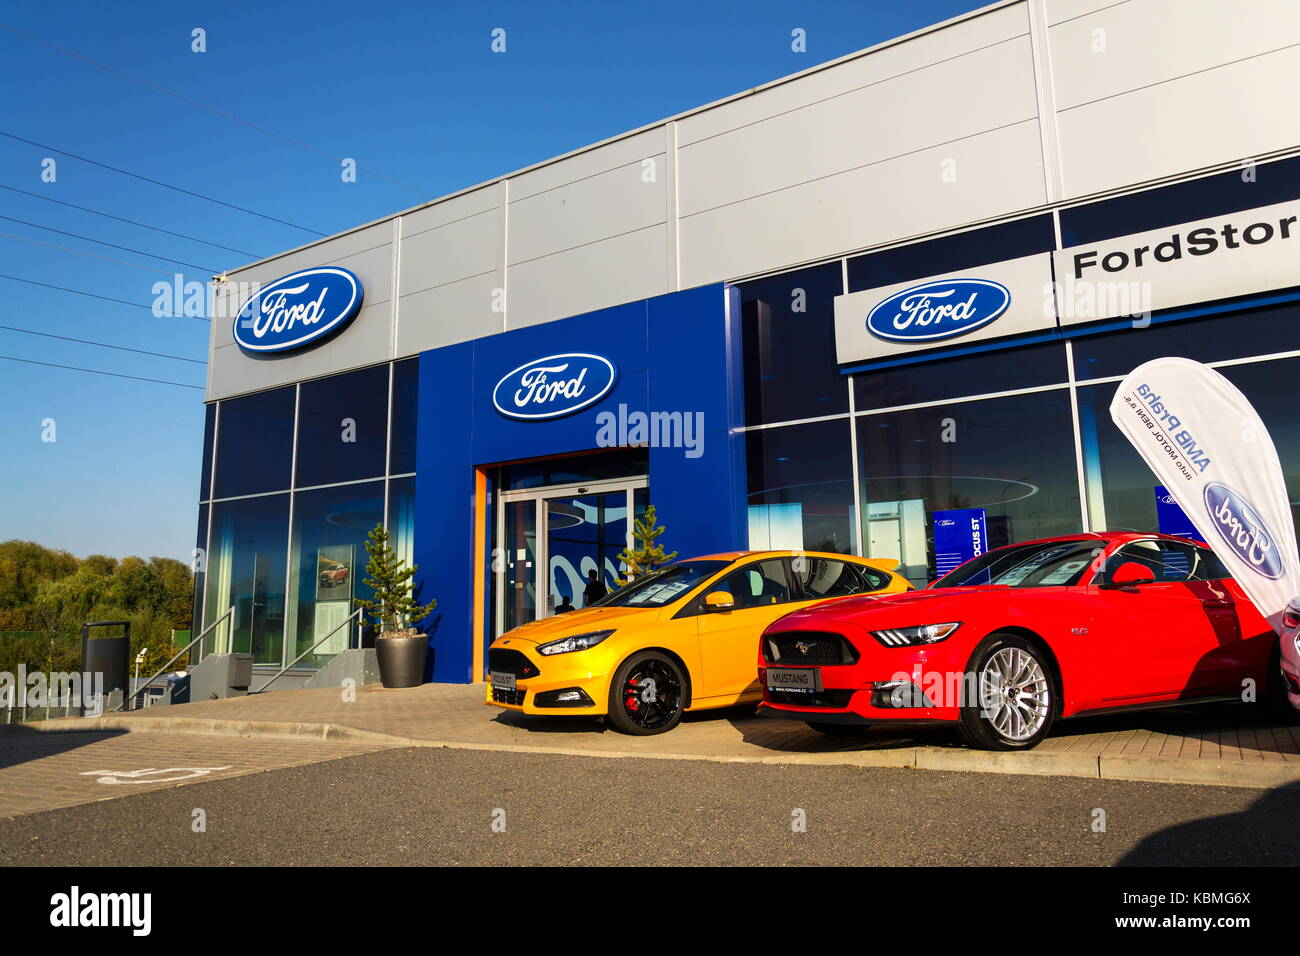 Ford focus electric stock photos ford focus electric for Ford motor company dealerships